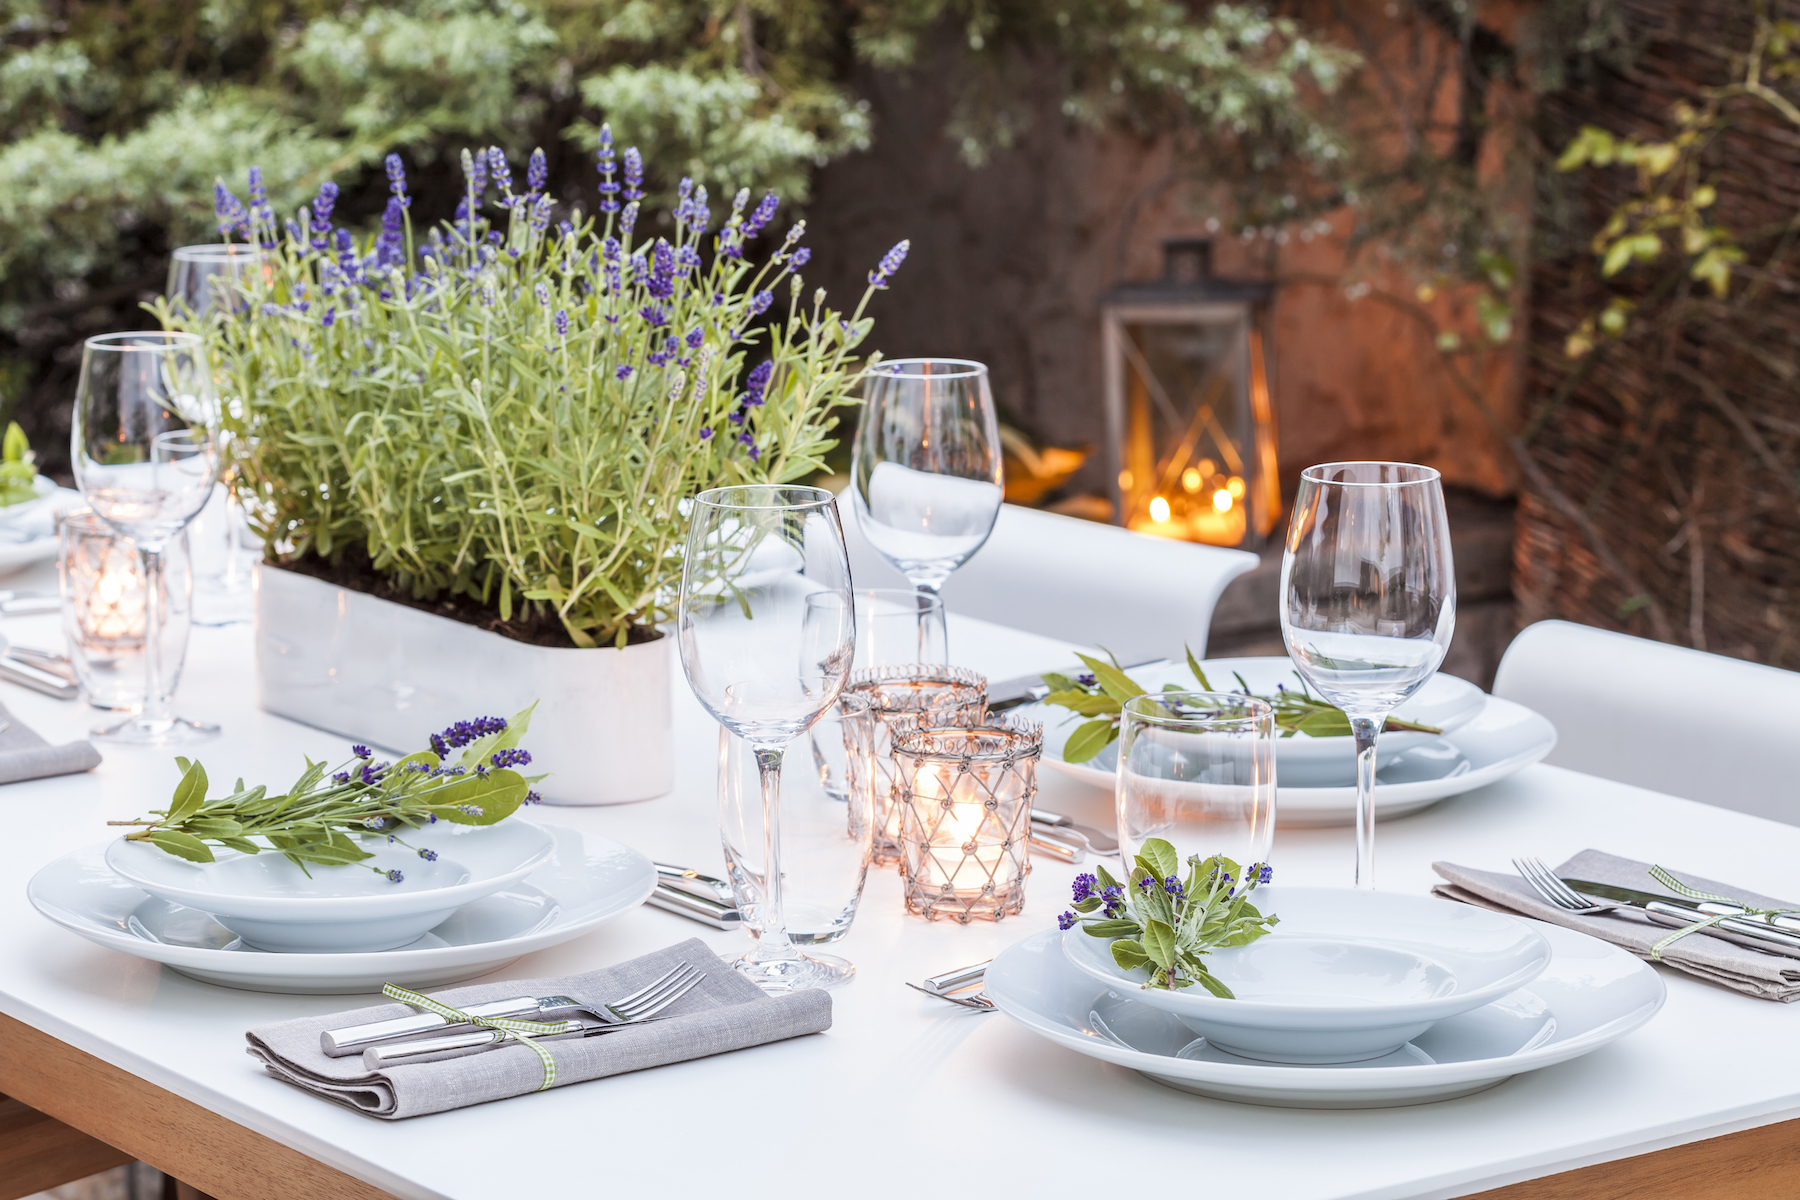 Outdoor Place Settings with Lavender